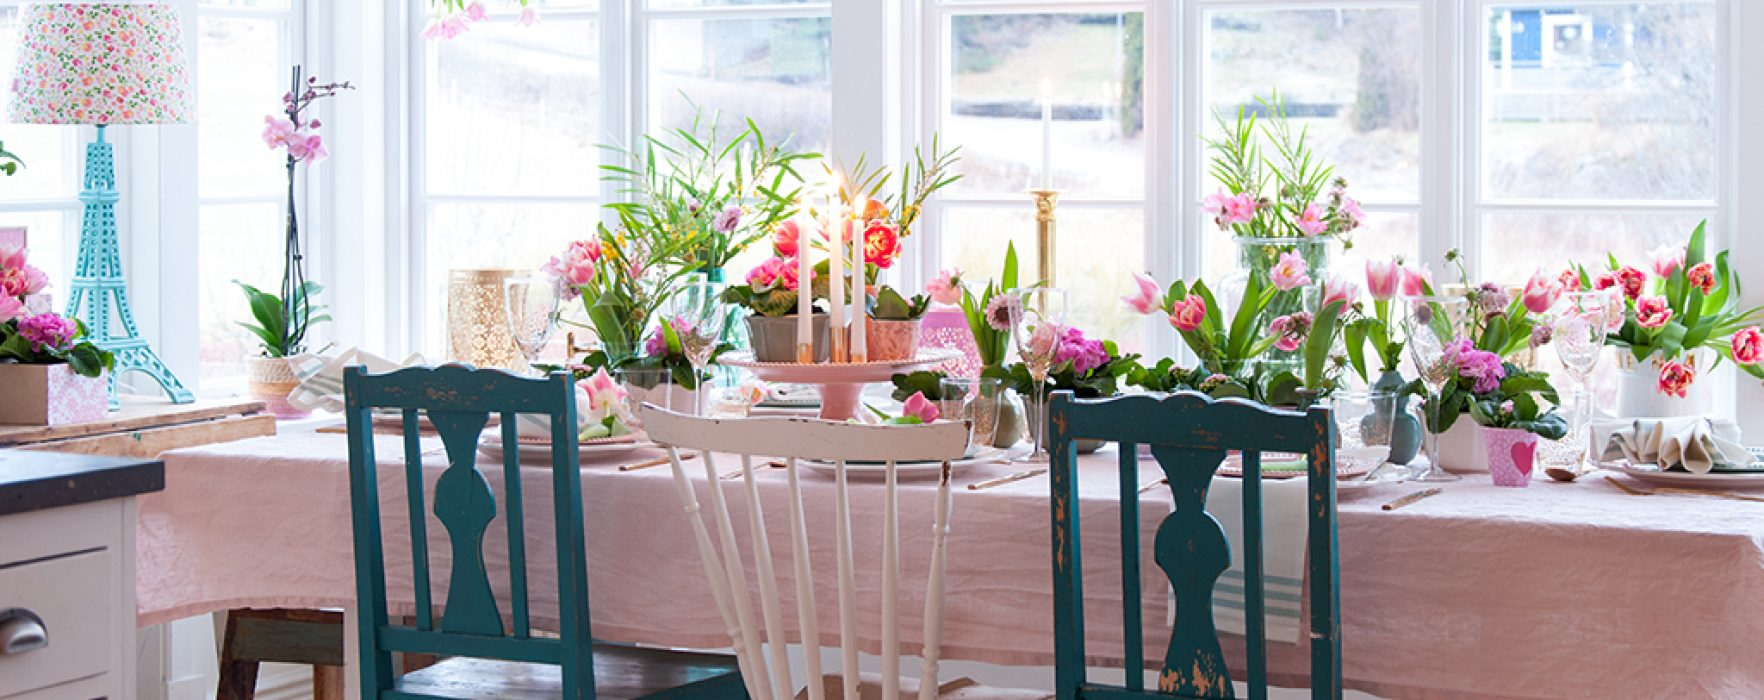 6 Ideas For A Sensational Easter Table Setting